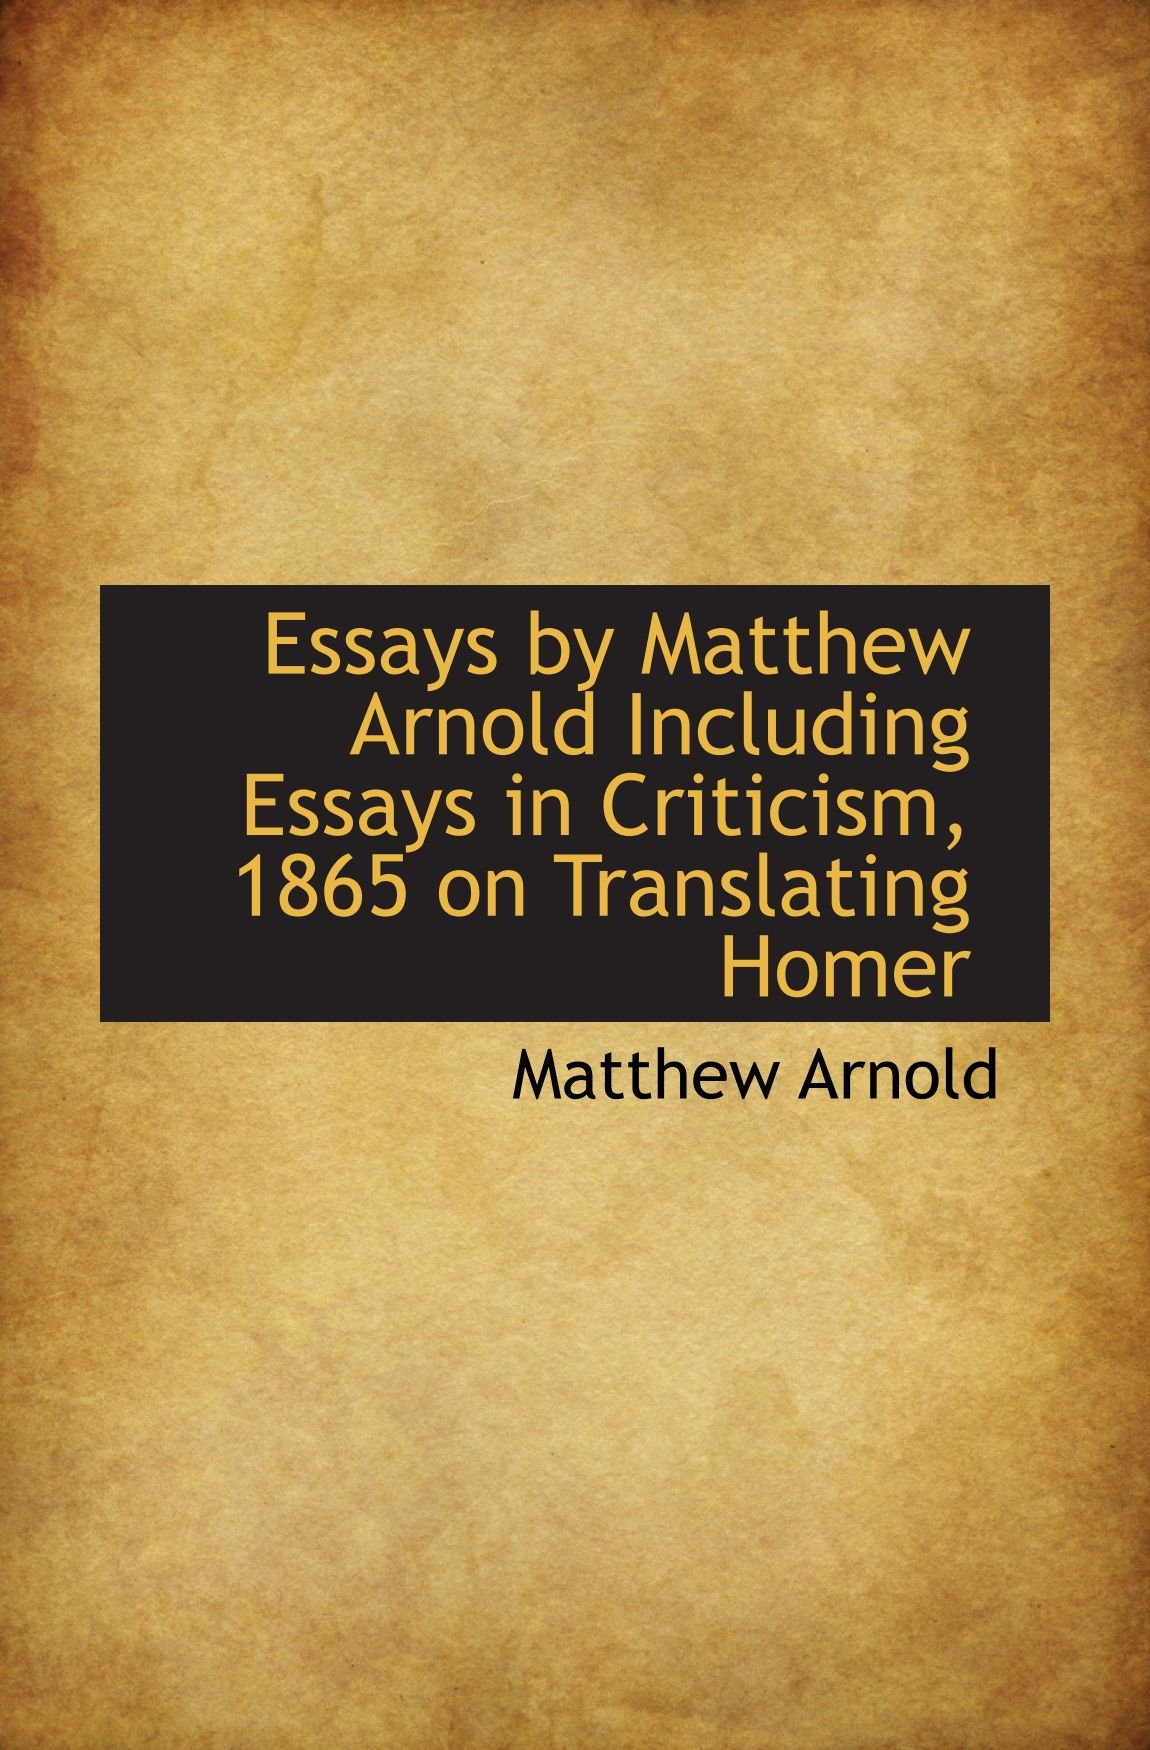 essays by matthew arnold including essays in criticism on essays by matthew arnold including essays in criticism 1865 on translating homer matthew arnold 9781115713436 com books